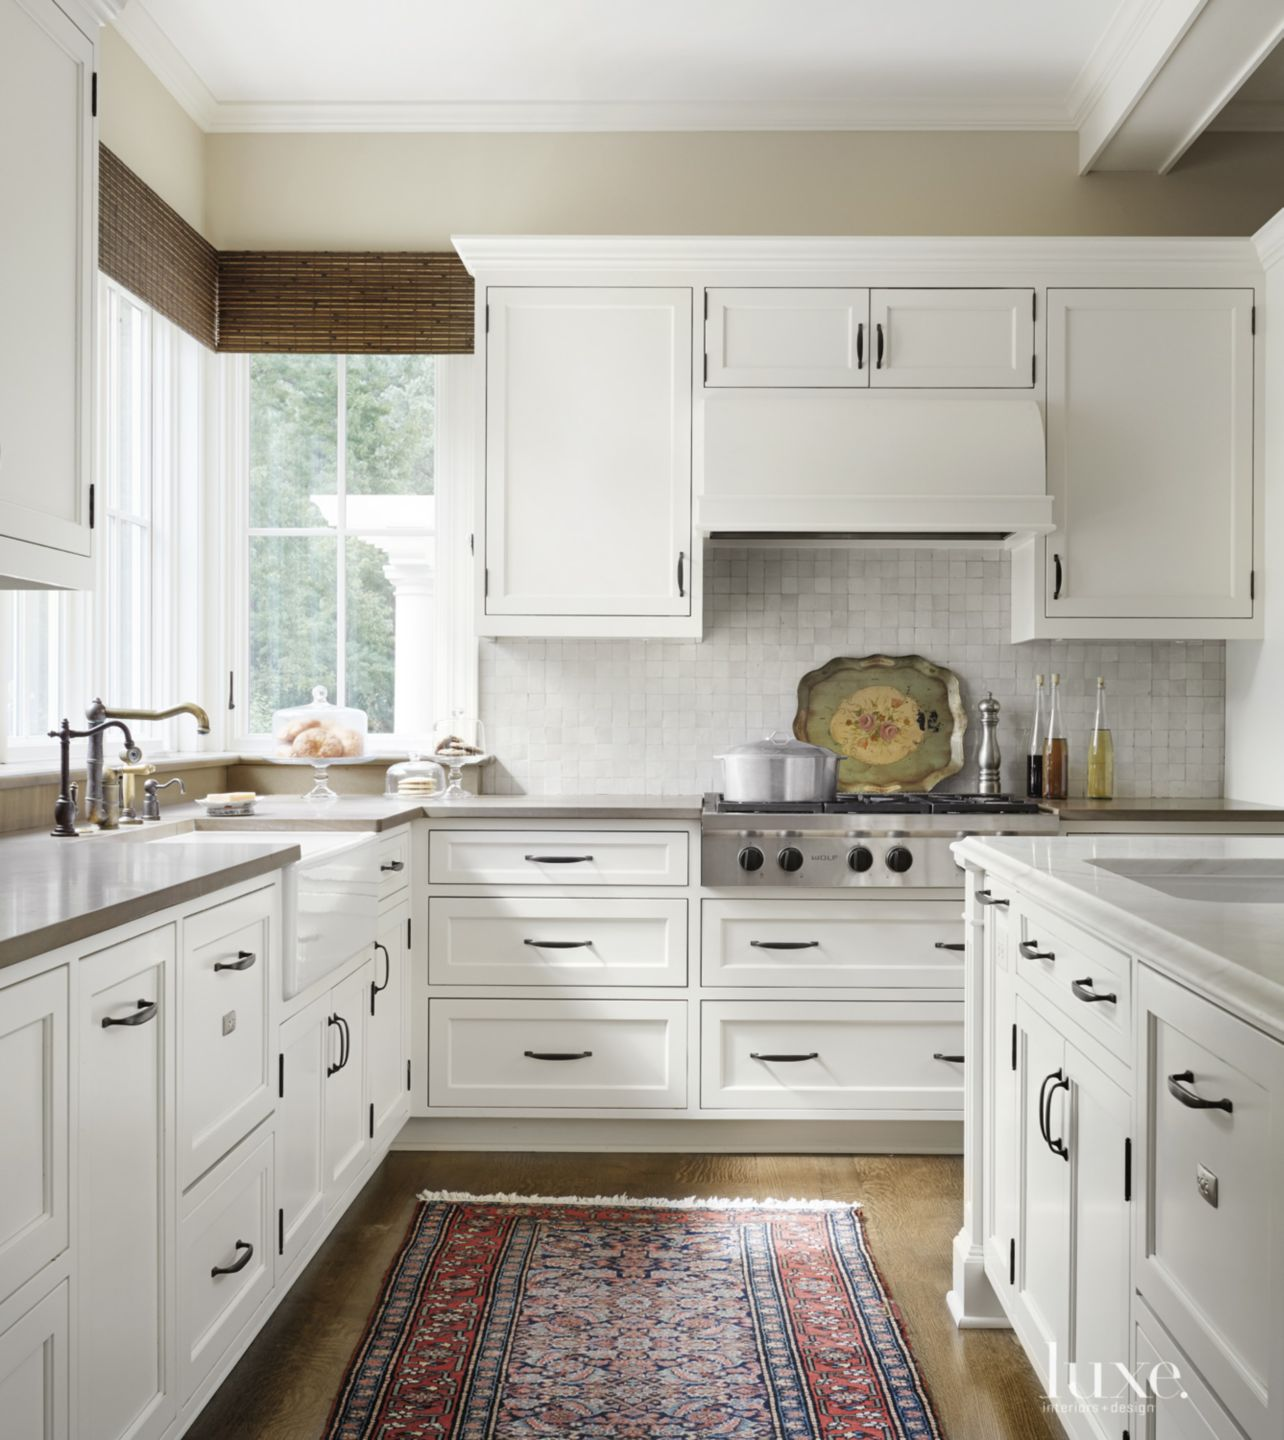 Transitional White Kitchen with Moroccan Tile Backsplash